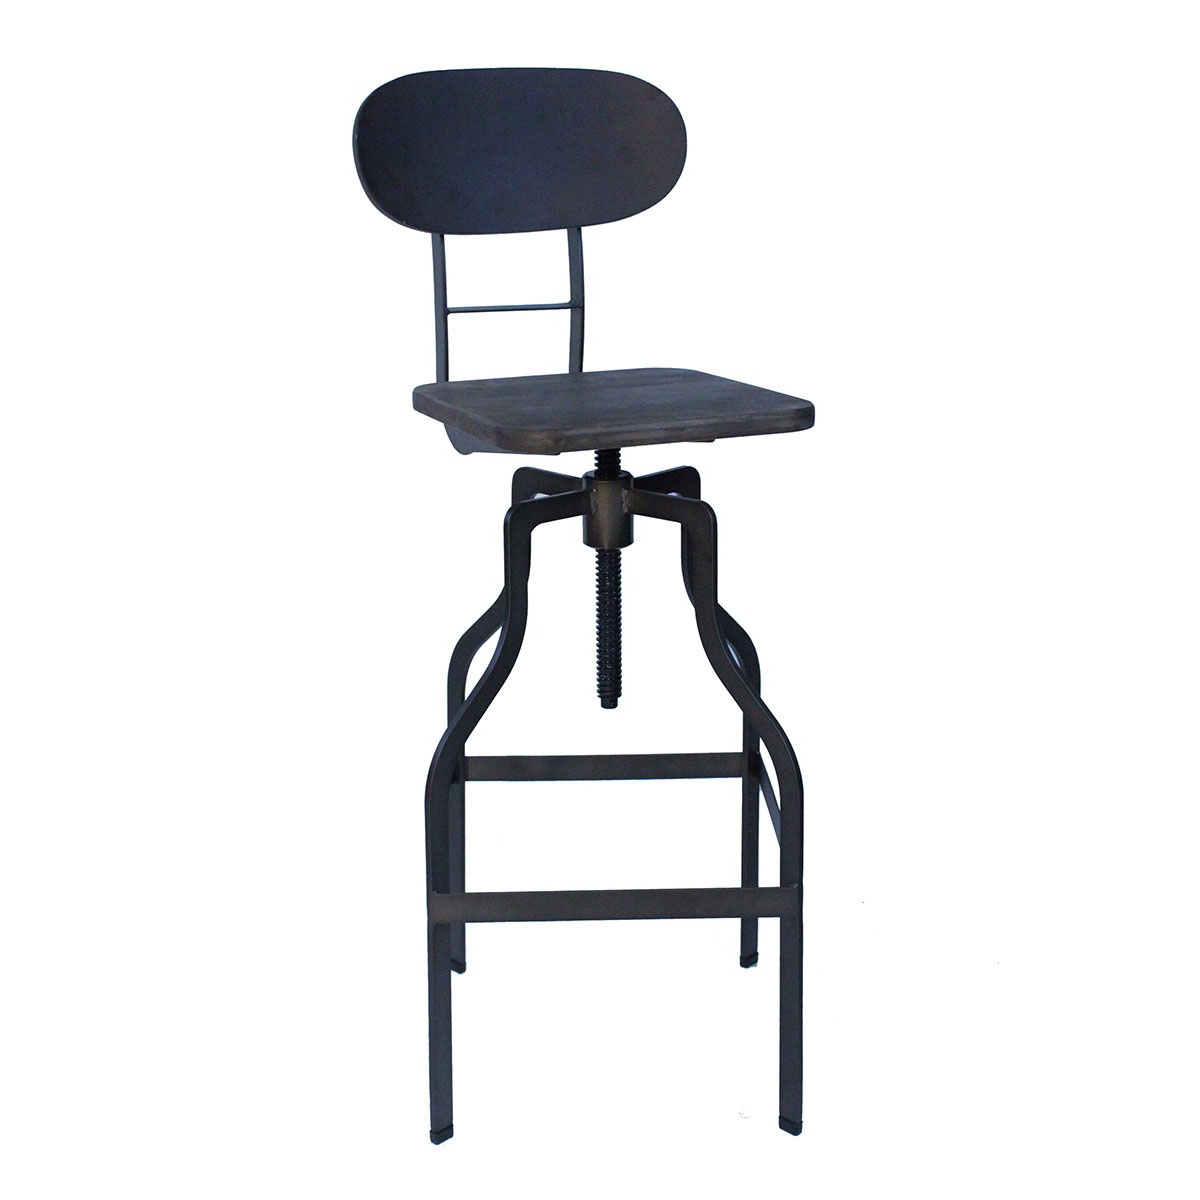 Bolzano Vintage Bar Stool - Black